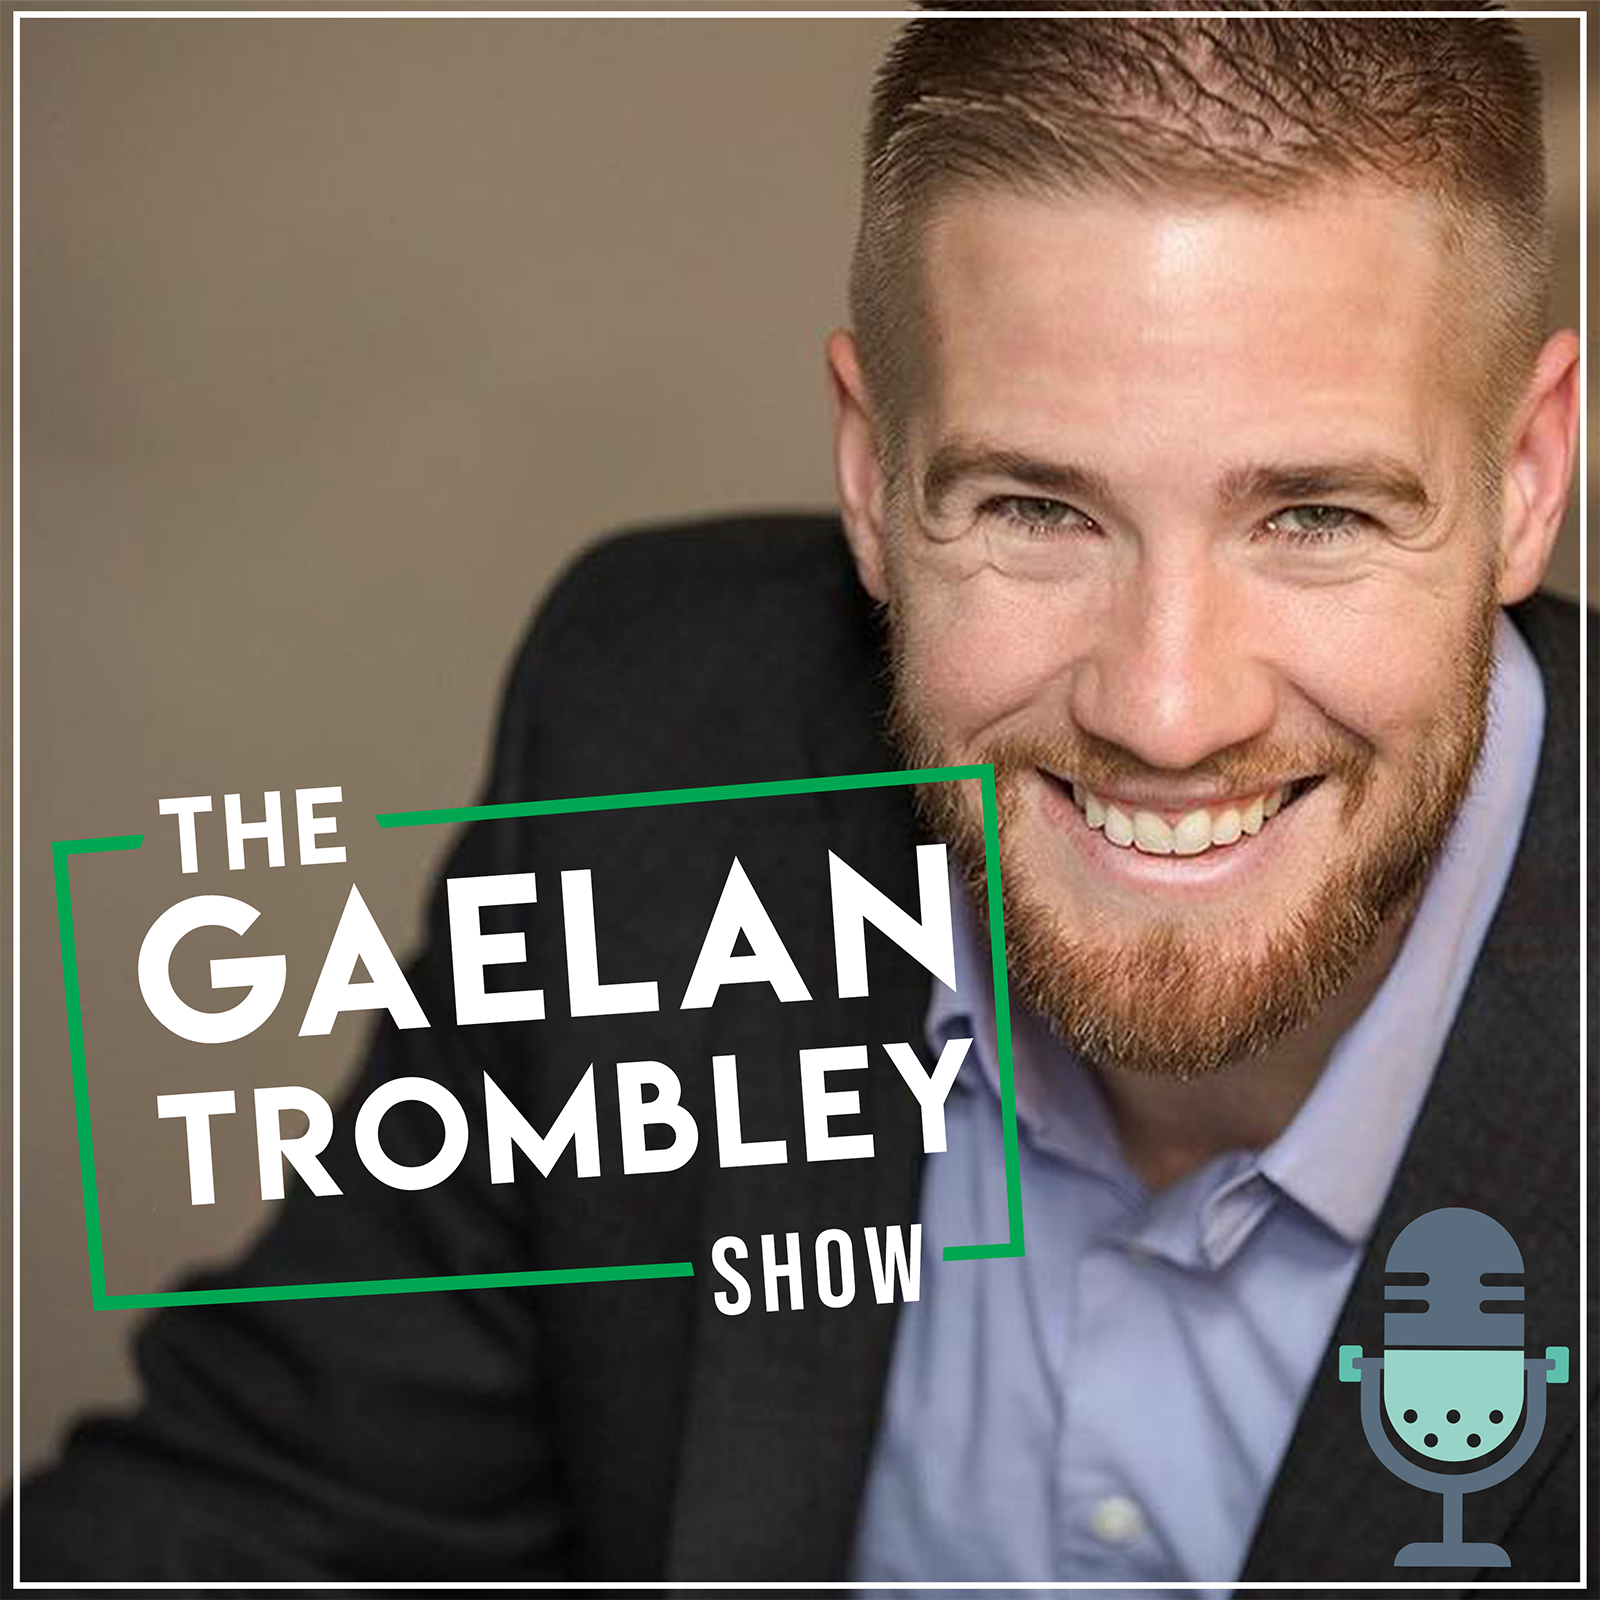 Talk Show Office Interior Design: The Gaelan Trombley Show